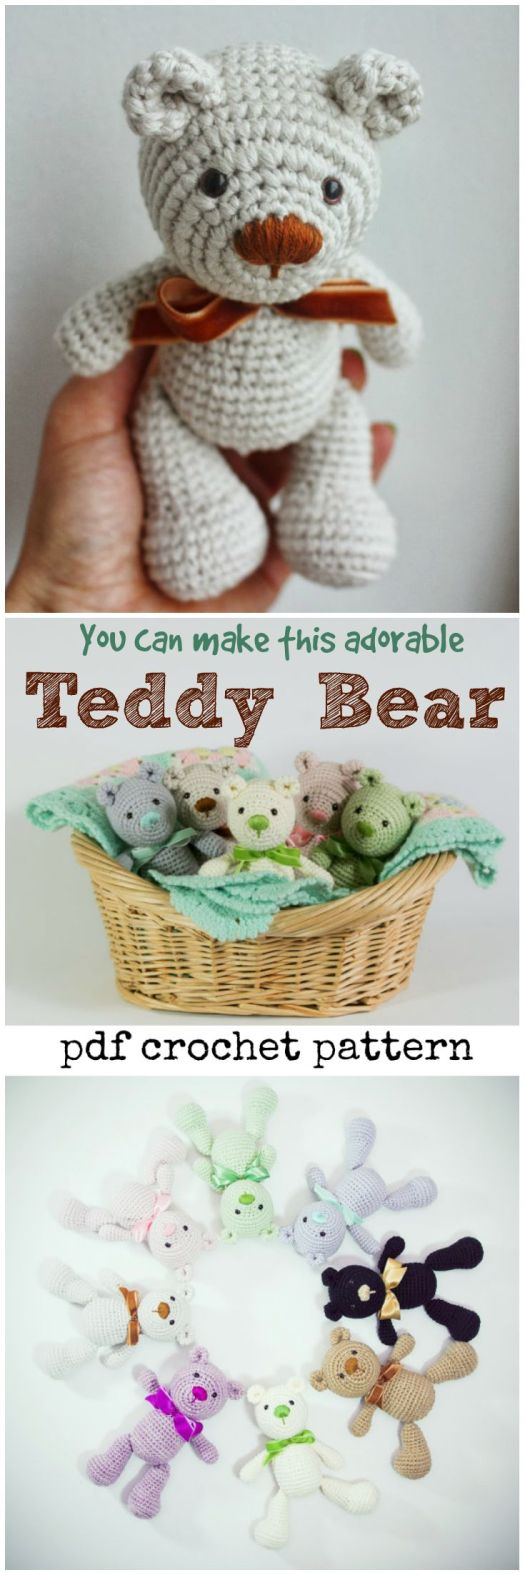 What a cute little teddy bear amigurumi pattern! I would love to crochet one of these adorable little stuffed animals as a gift for the next baby that comes along! Absolutely sweet little handmade toy crochet pattern to make!